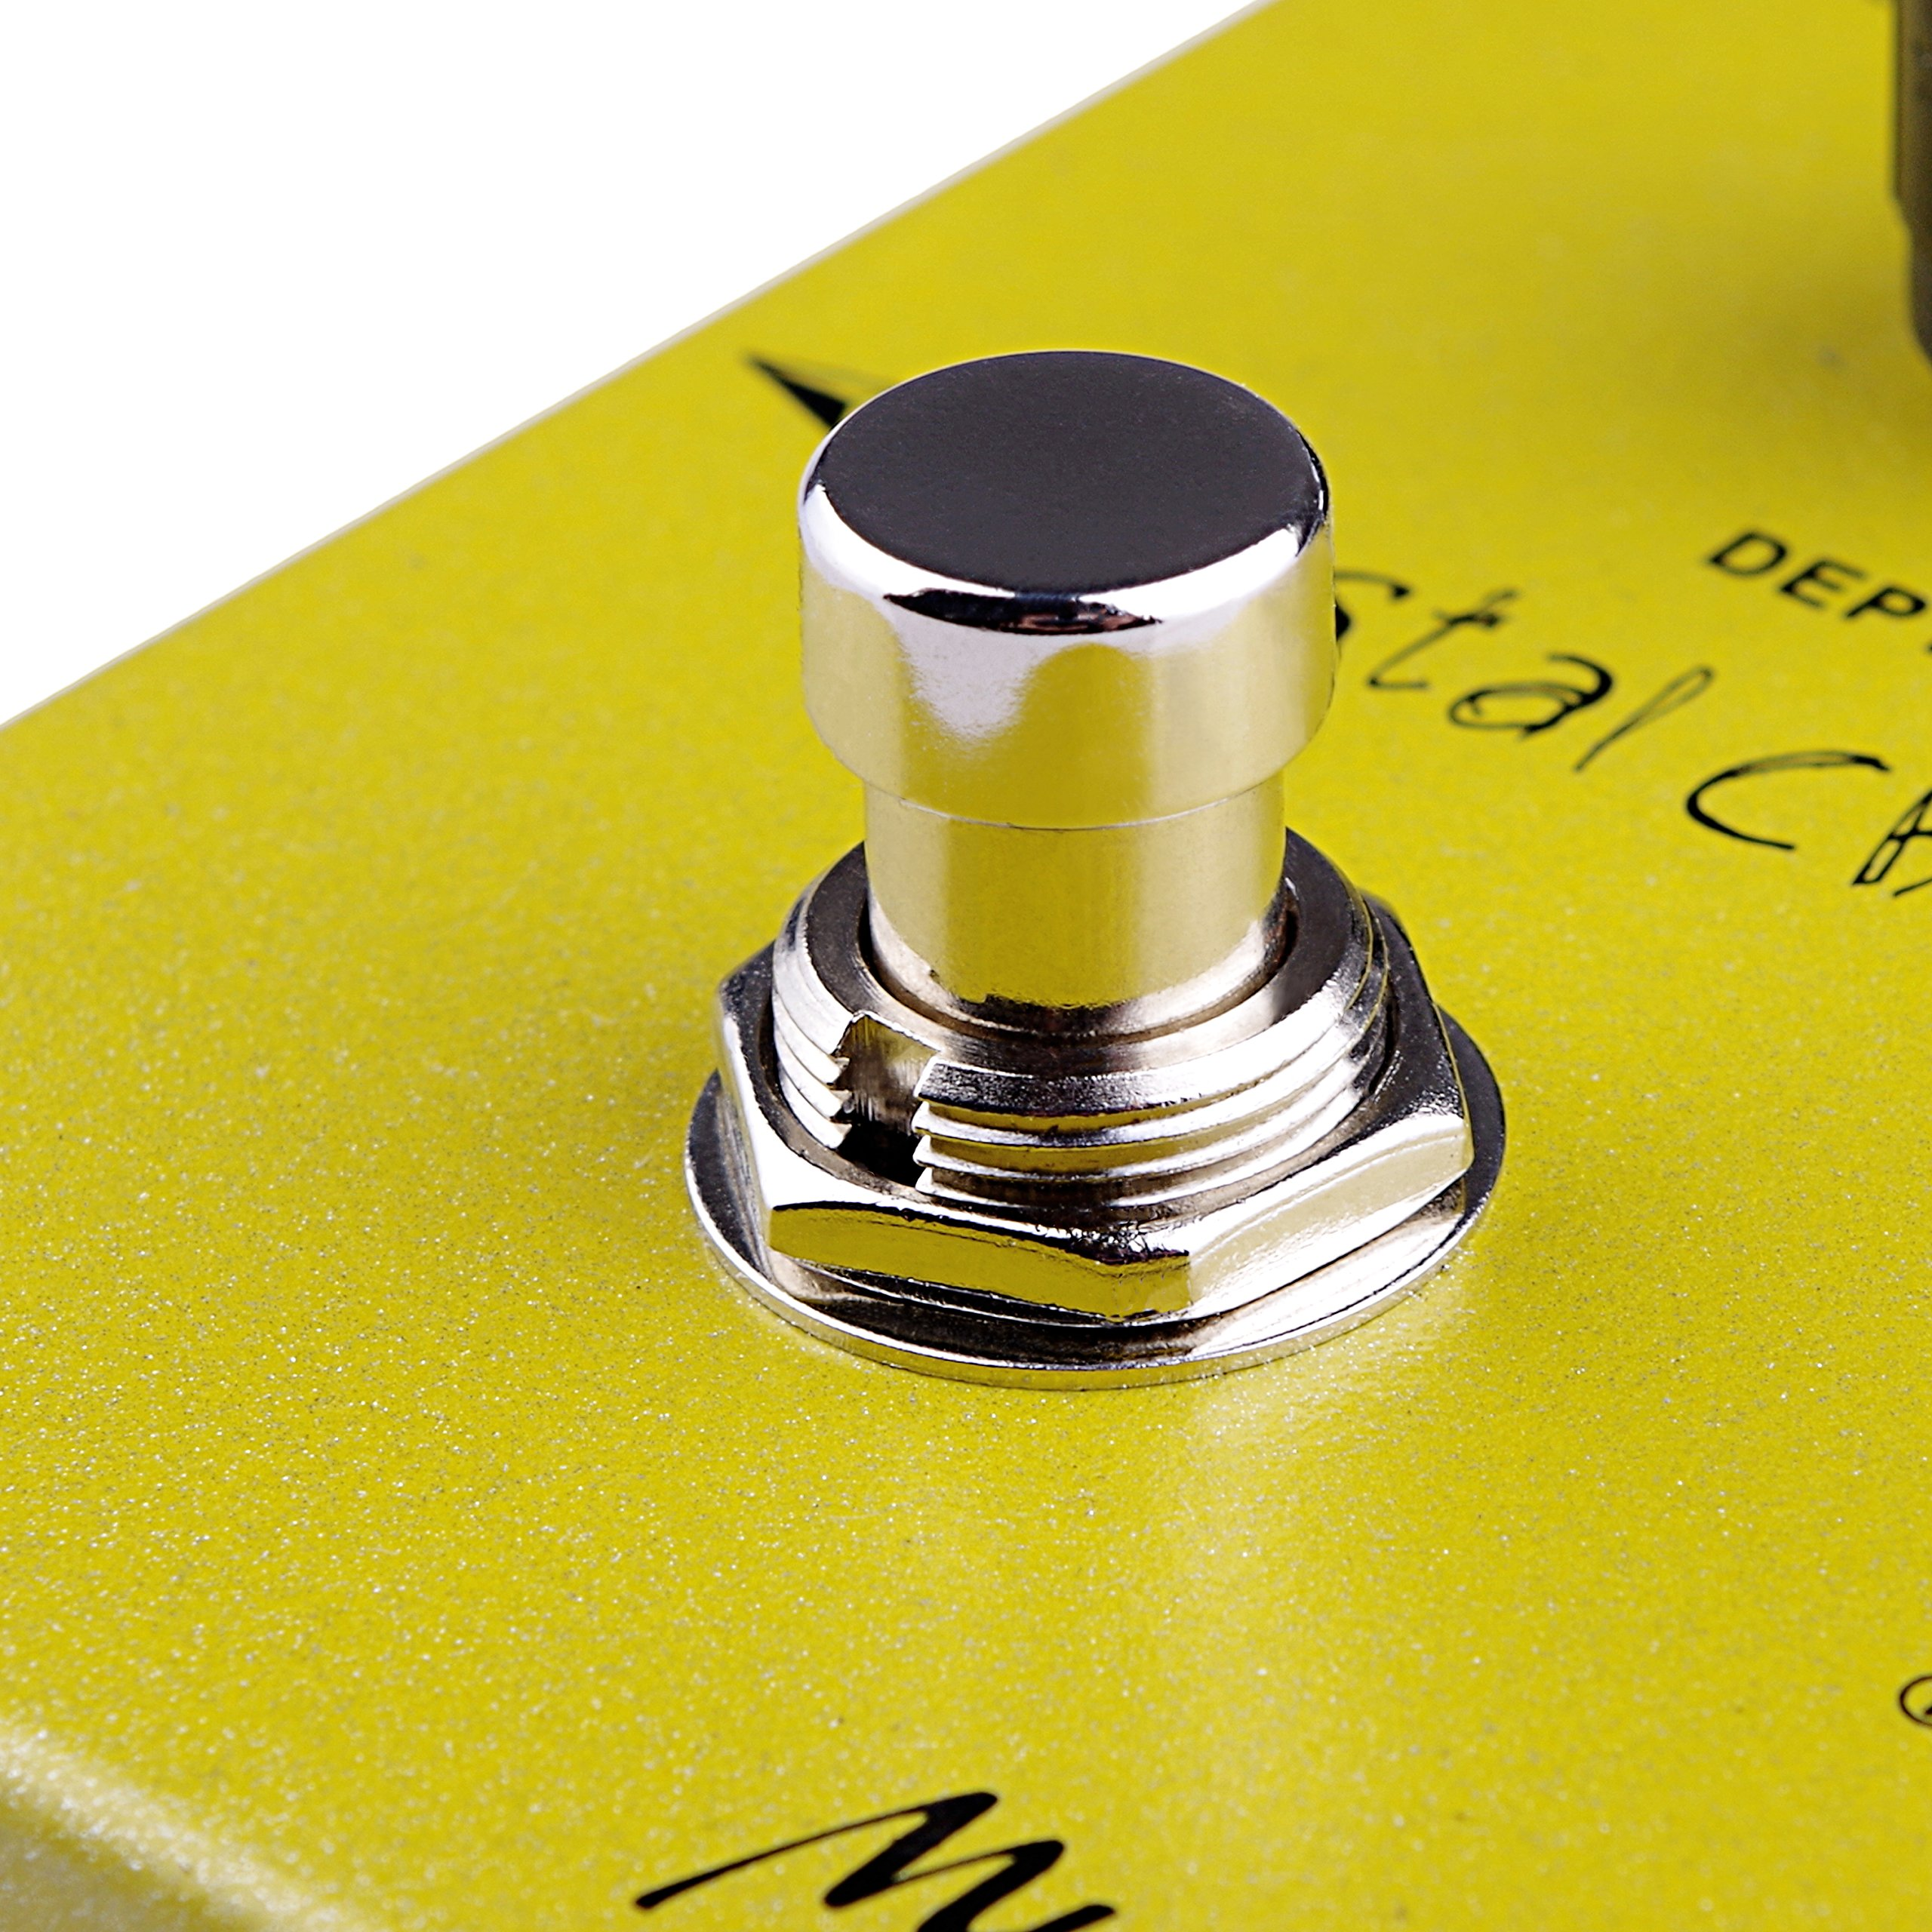 Chorus Effect Guitar Pedal Mugig,Classic Chorus with True Bypass Three different knob: Volume, Speed, Depth